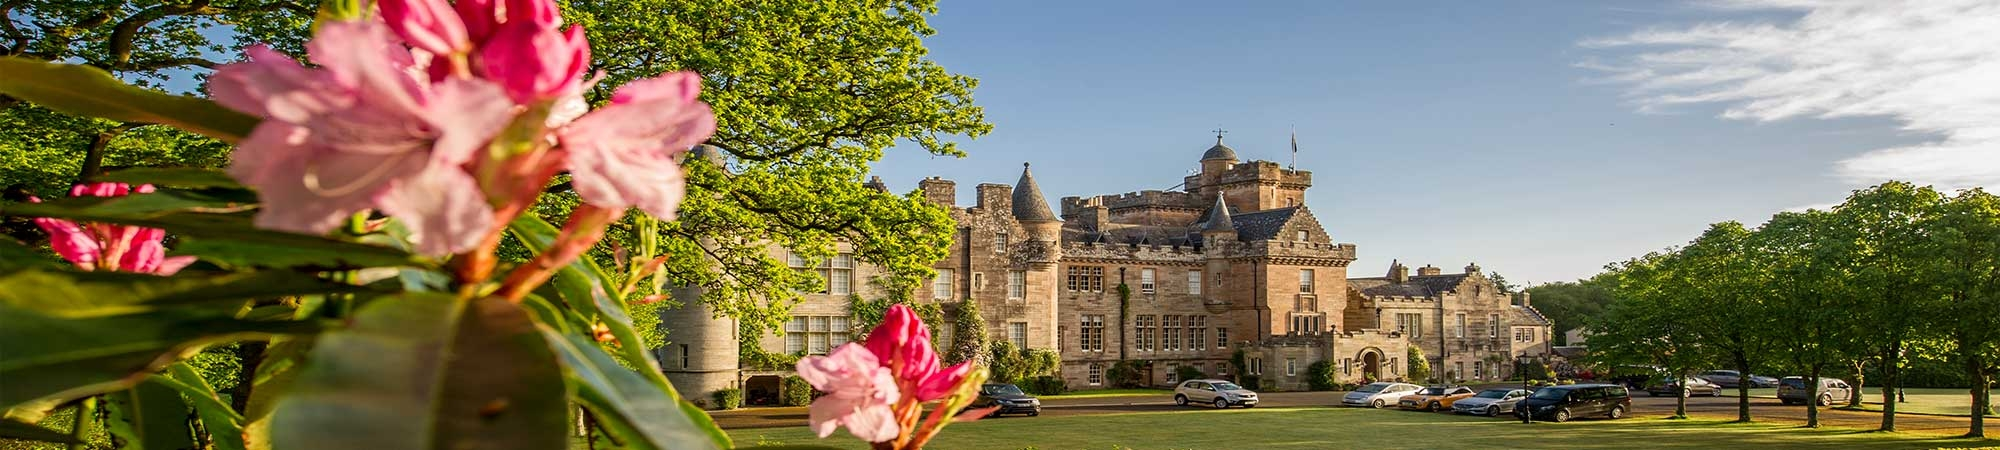 Whisky and castles: A long weekend in Scotland